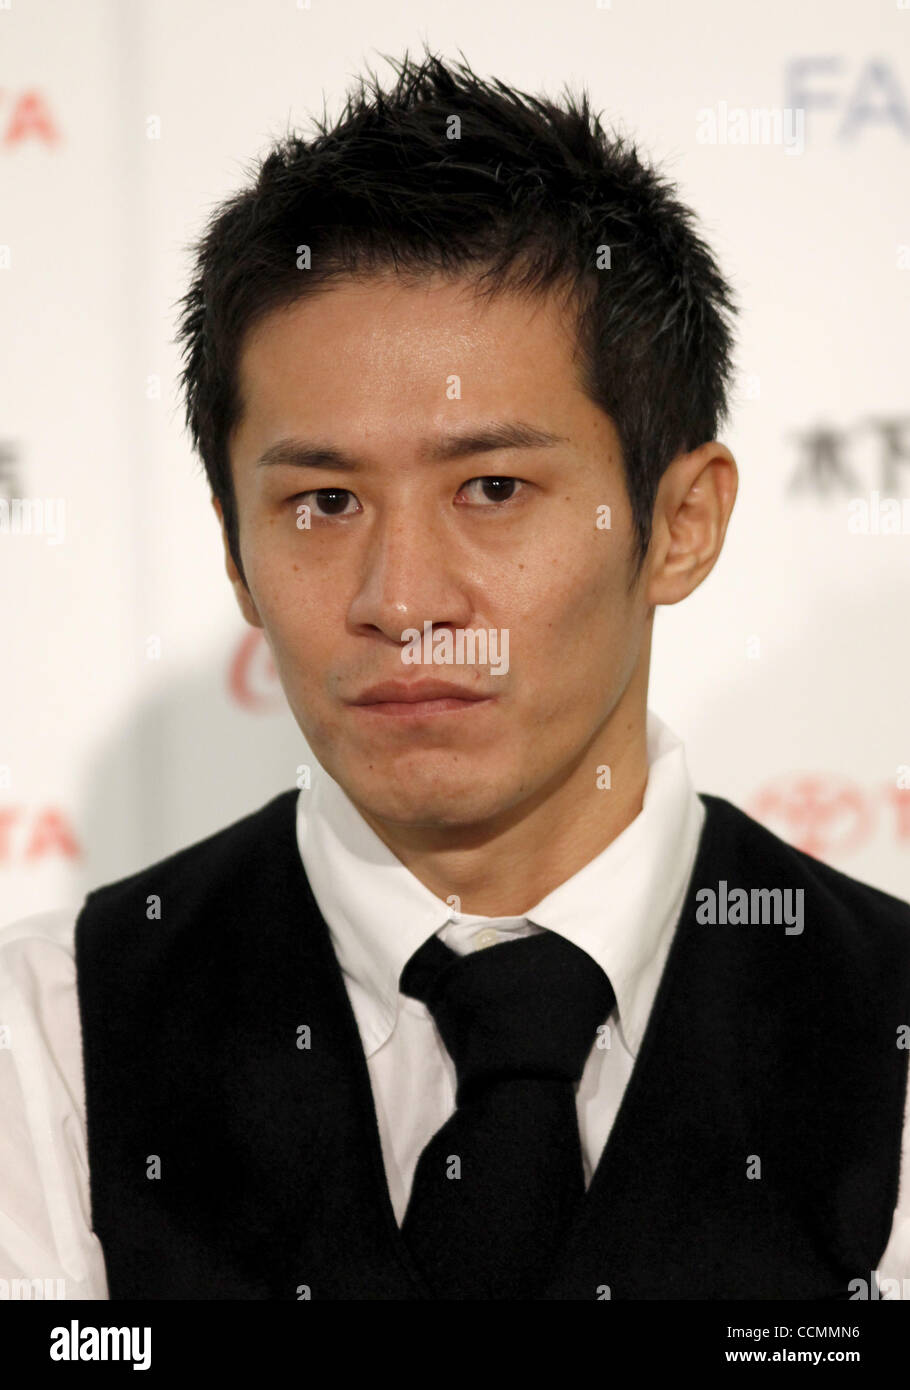 Oct. 28, 2010 - Tokyo, Japan - Actor MASAKI MIURA attends a press conference promoting Sketches of Kaitan City during - Stock Image